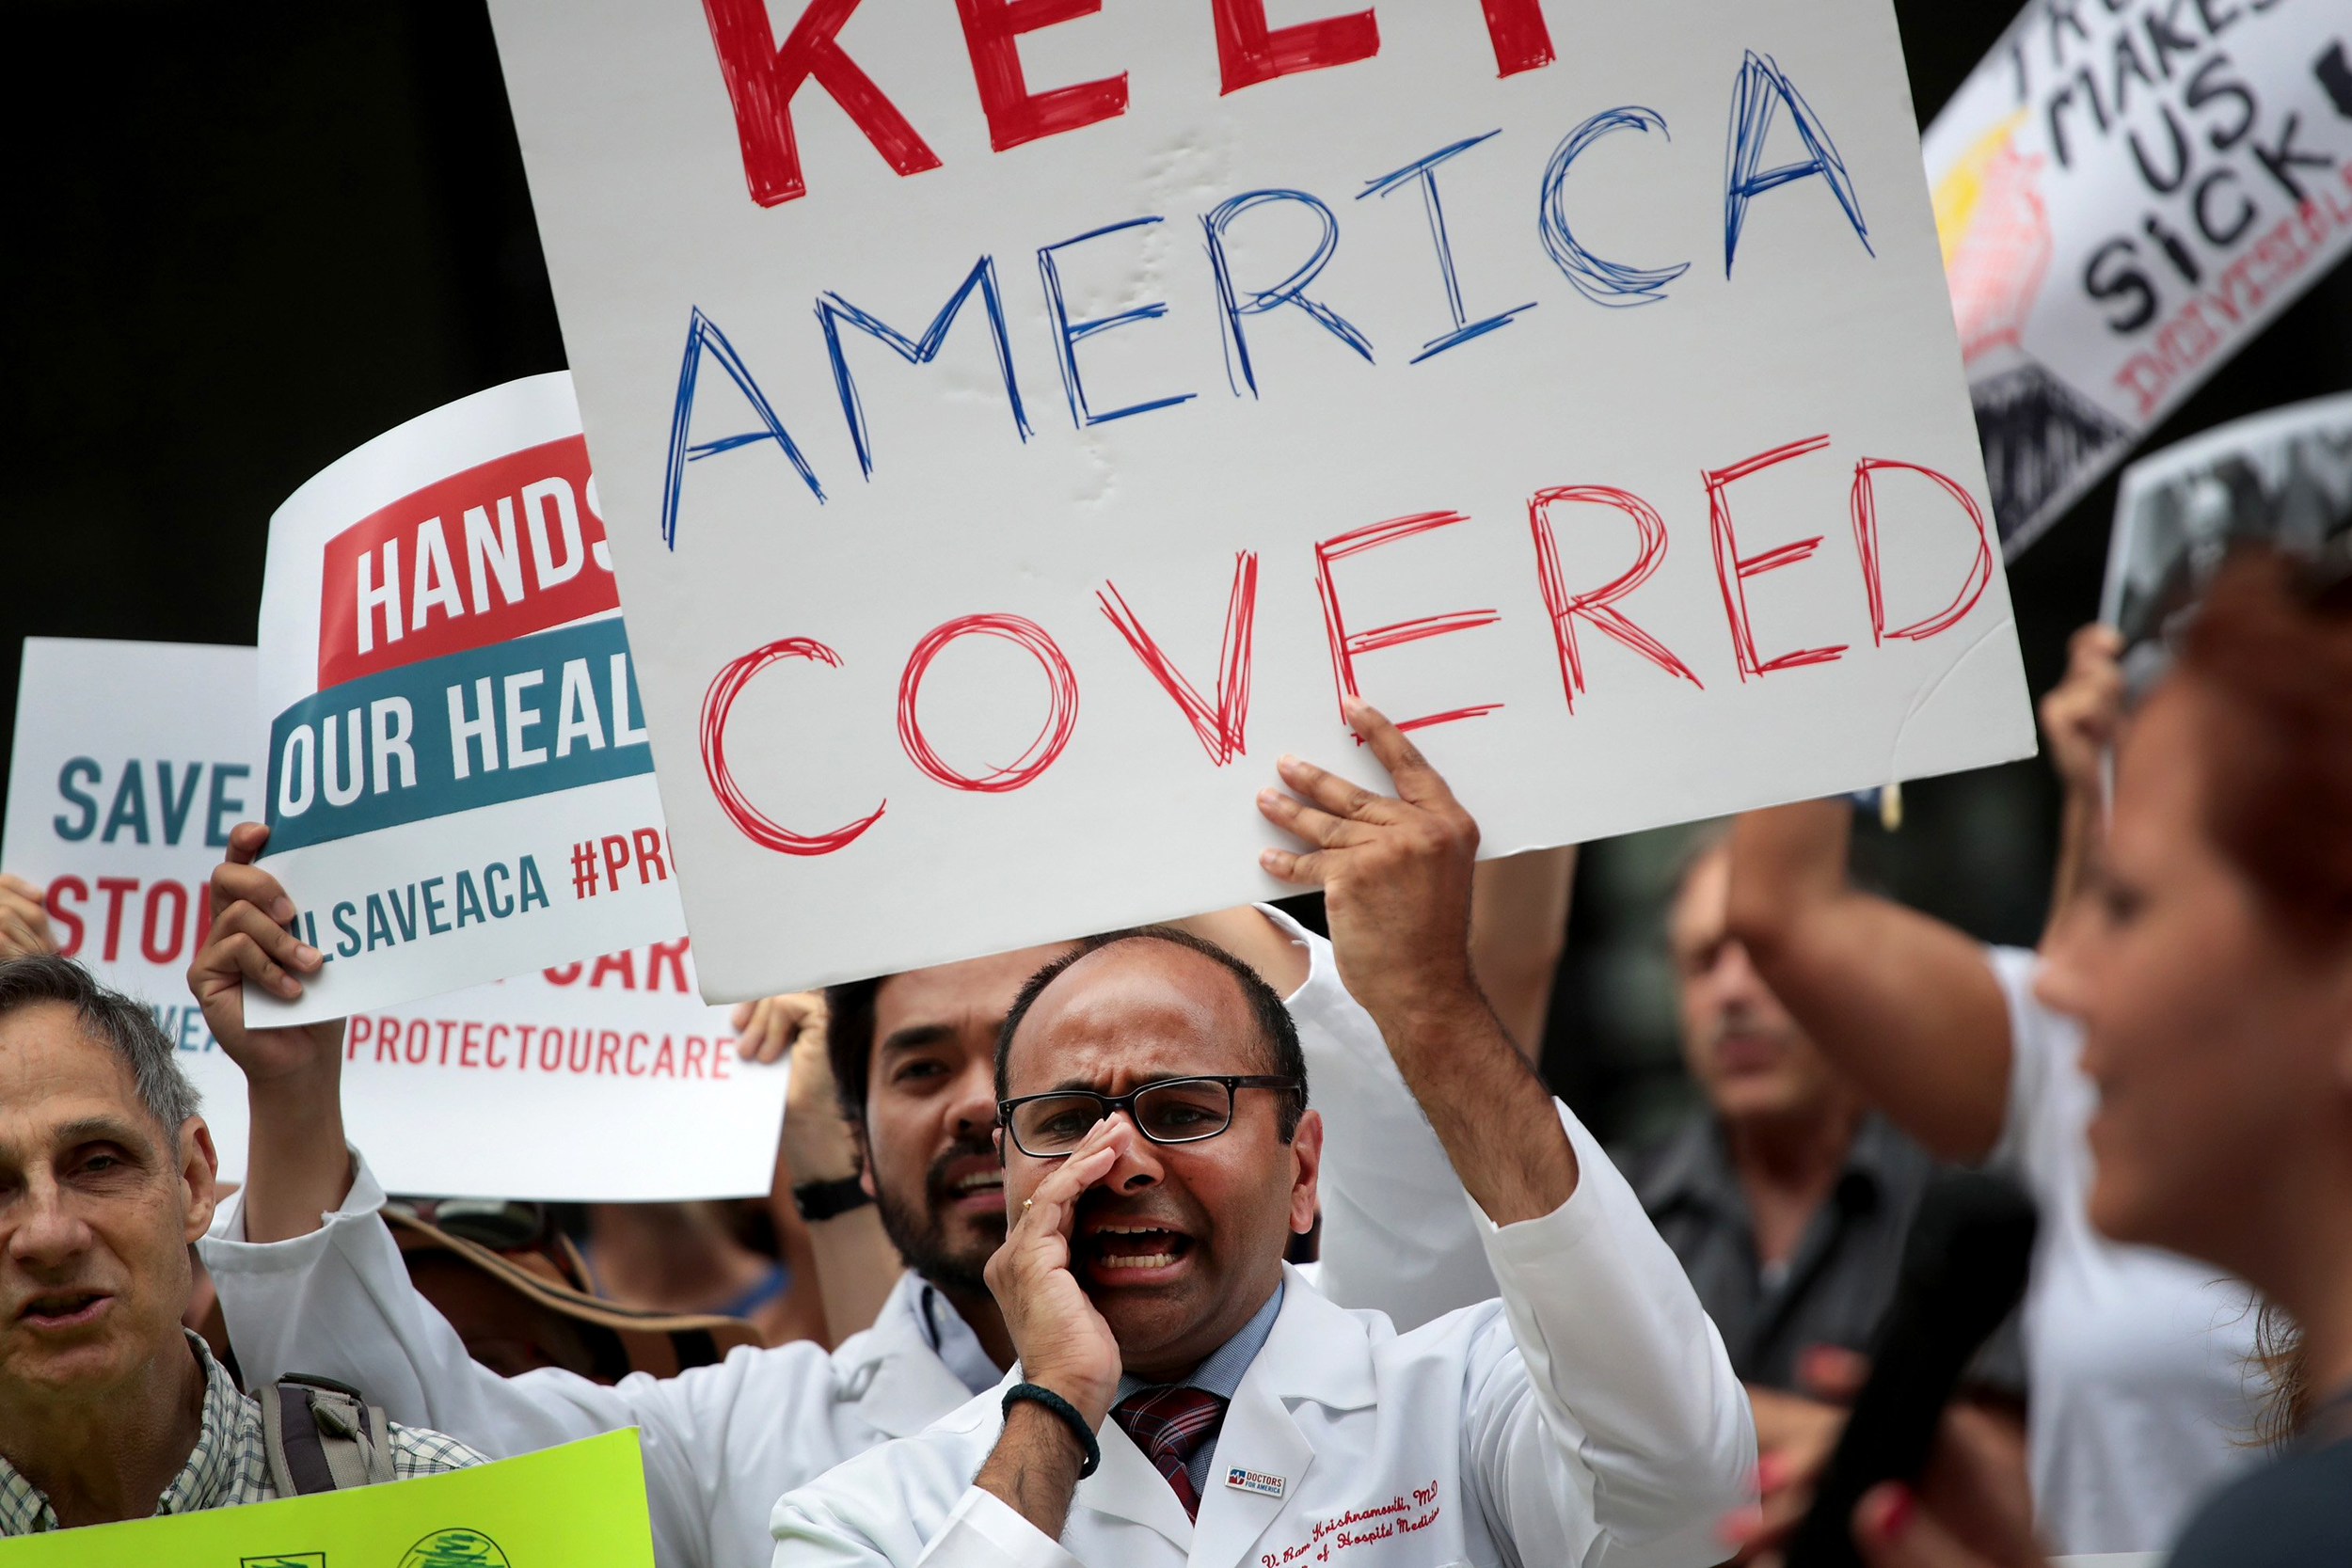 Image: Demonstrators protest changes to the Affordable Care Act on June 22, 2017 in Chicago, Illinois. Senate Republican's unveiled their revised health-care bill in Washington after fine tuning it in behind closed doors.